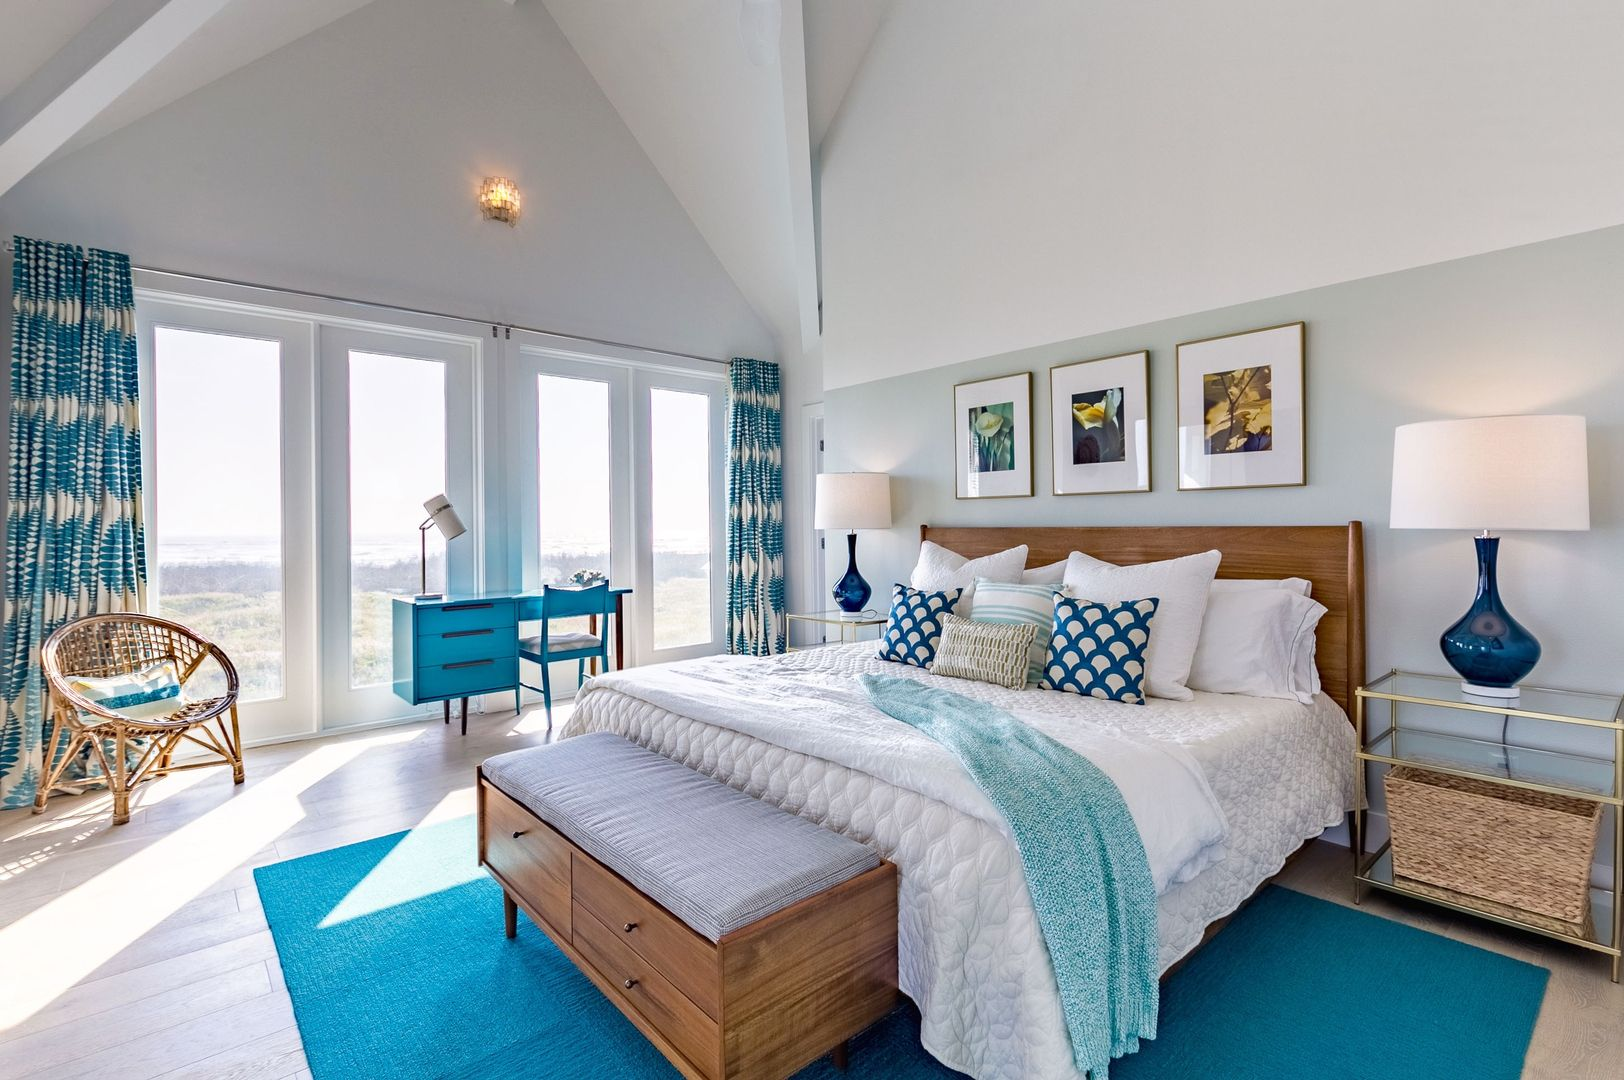 Teal Turquoise And Aloe Beach House Bedroom Modern Beach Design